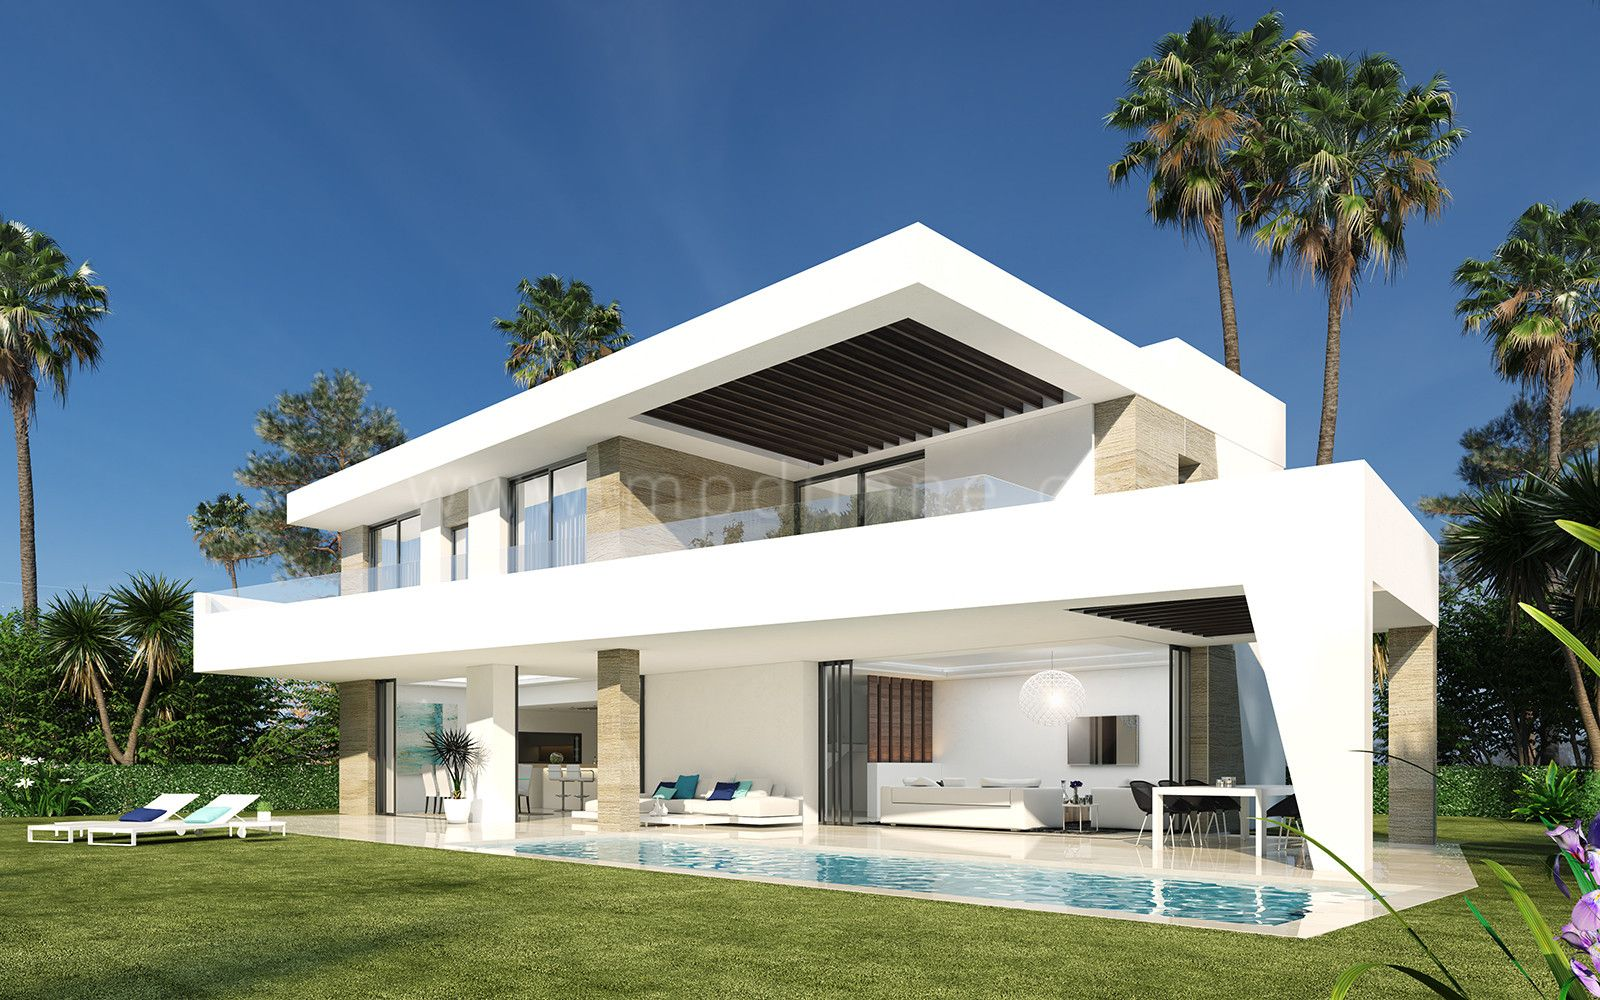 Villa for sale in la resina golf estepona 698 500 €